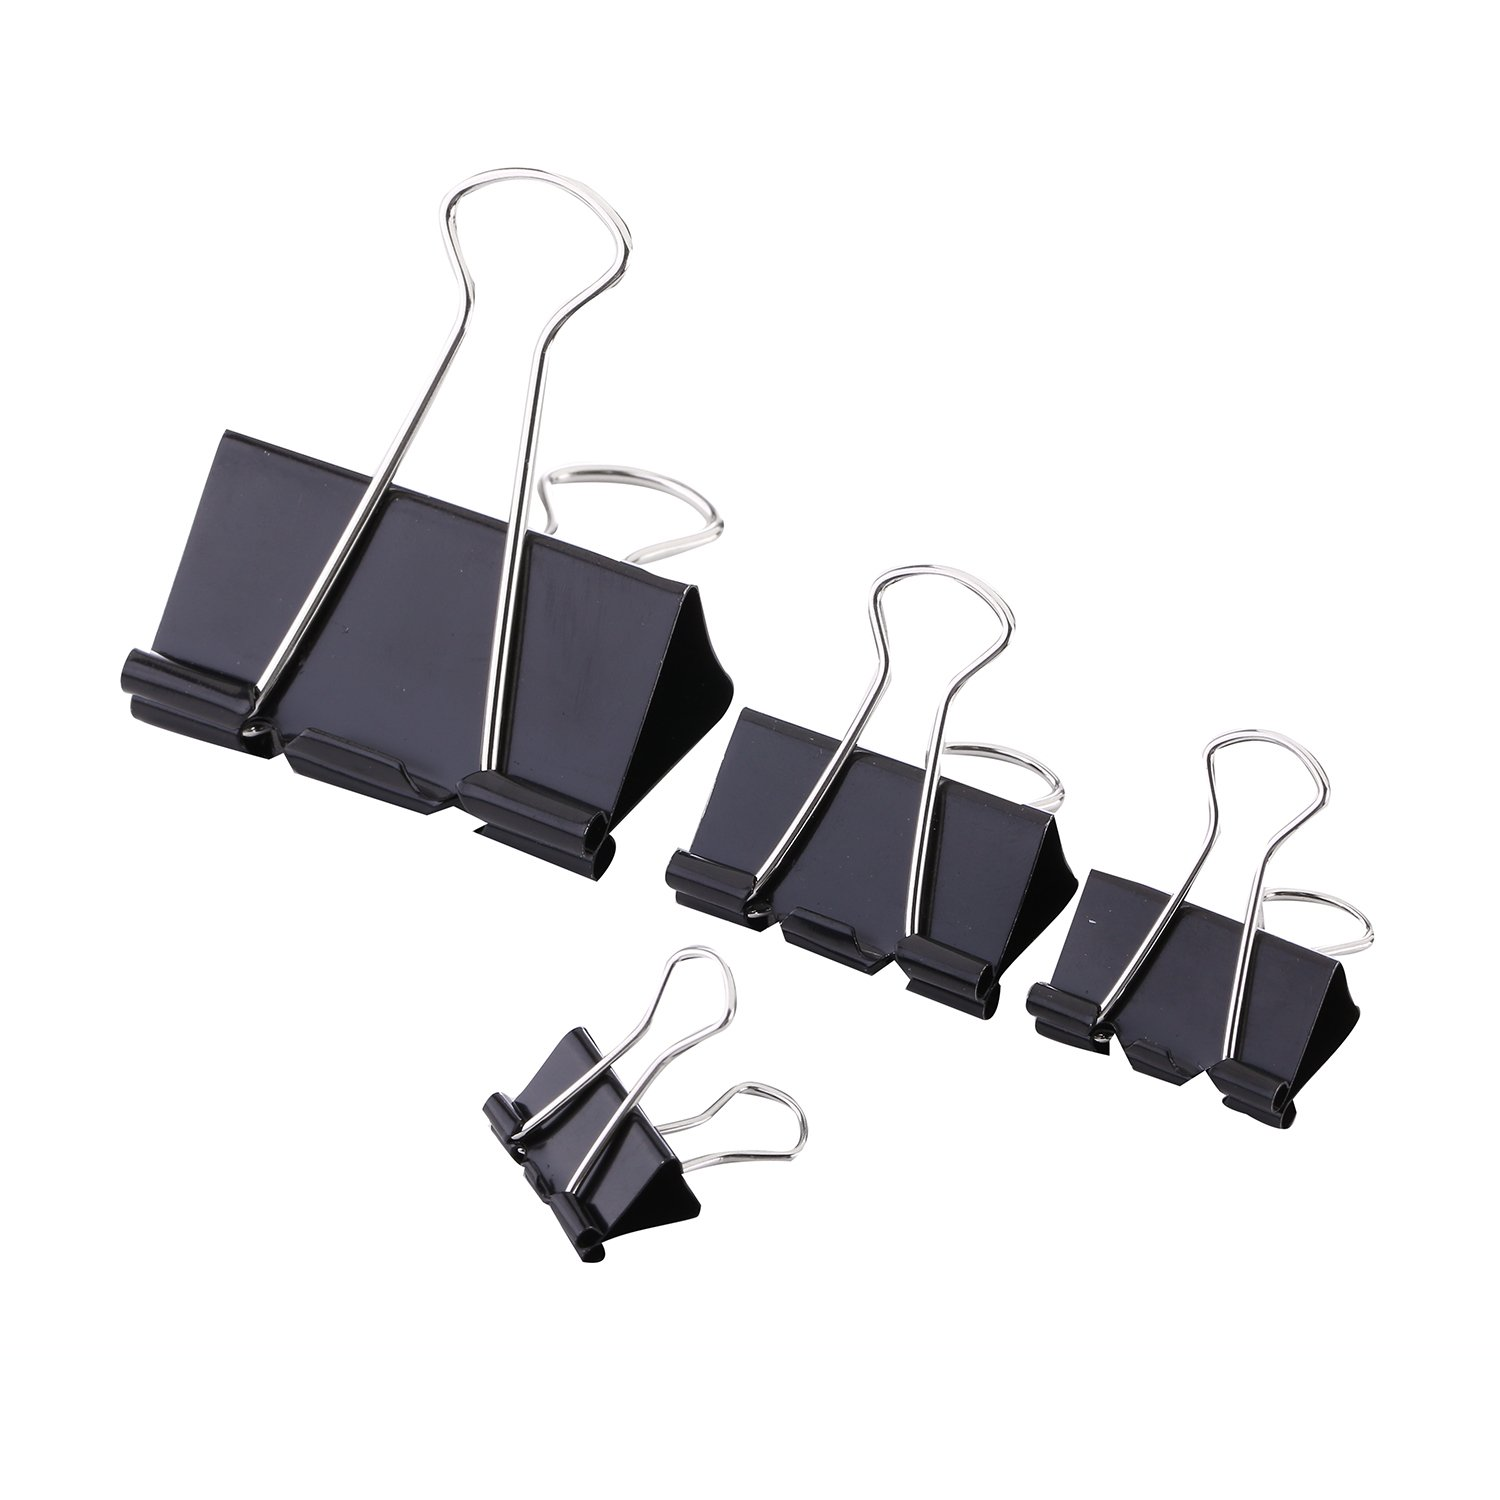 Dxg 40 Pieces Binder Clips Reusable Paper Binder Clips for Keeping Documents Together, 4 Sizes, Black